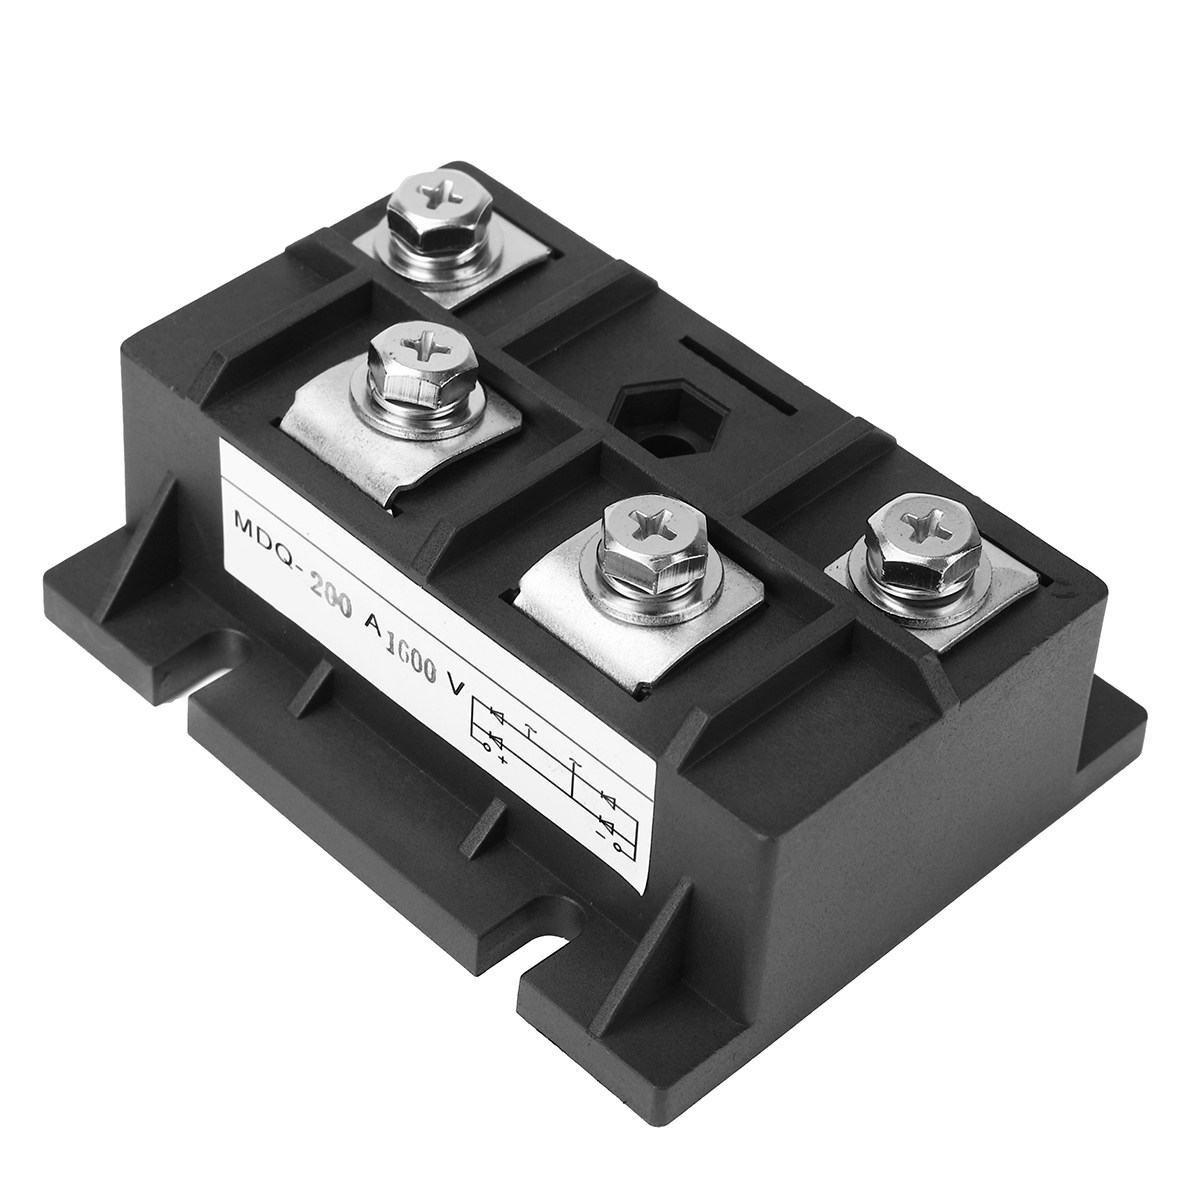 1PC 122241581320 150A 1600V Diode Module Single Phase Bridge Rectifier MDQ-200A Rectifiers Electronic Components & Supplies1PC 122241581320 150A 1600V Diode Module Single Phase Bridge Rectifier MDQ-200A Rectifiers Electronic Components & Supplies